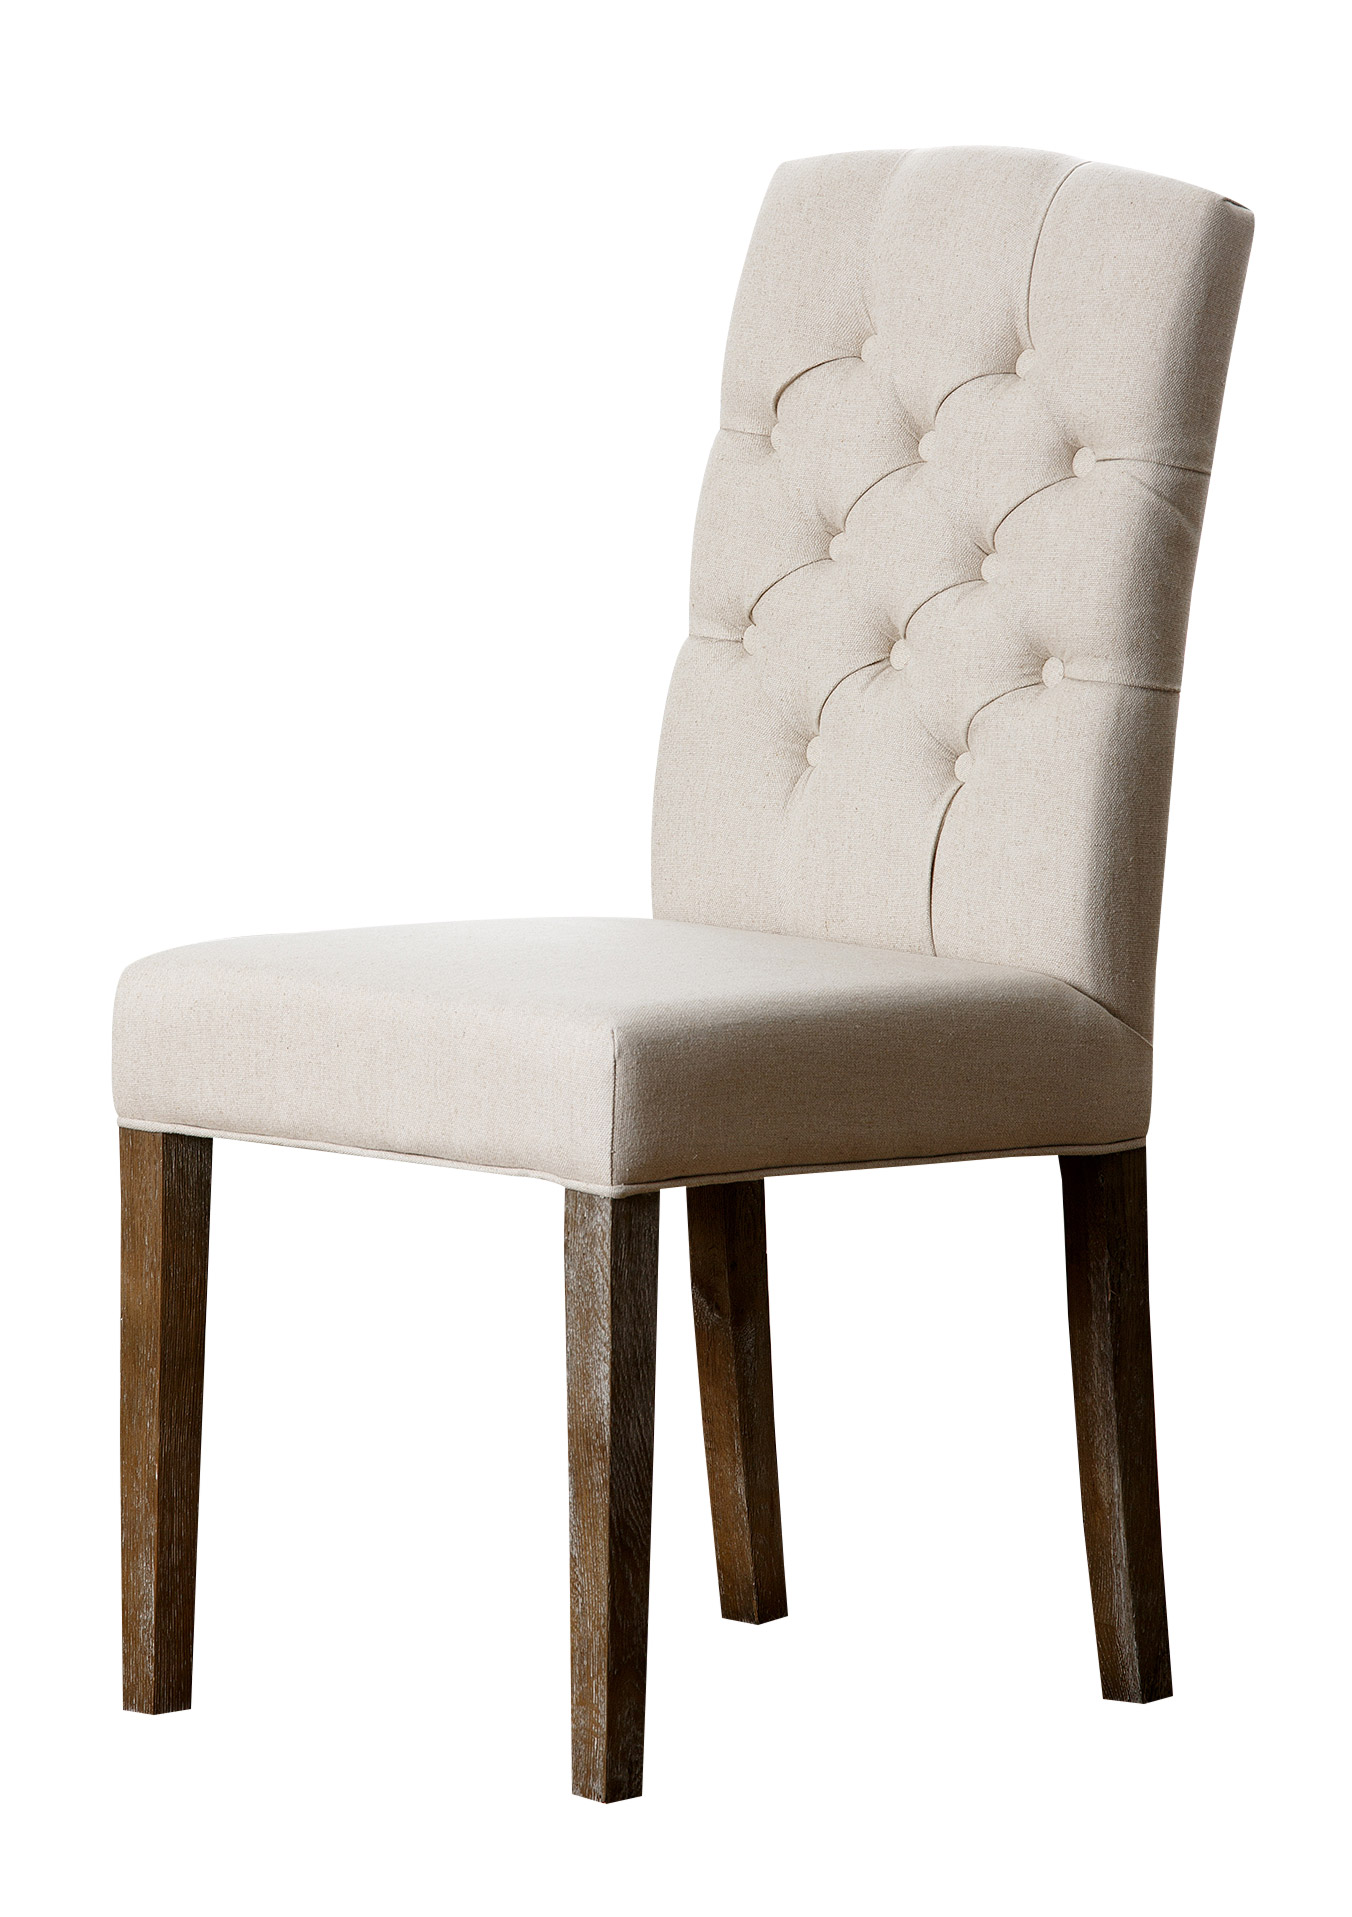 Abbyson Living Jonah Linen Fabric Tufted Dining Chair Multiple